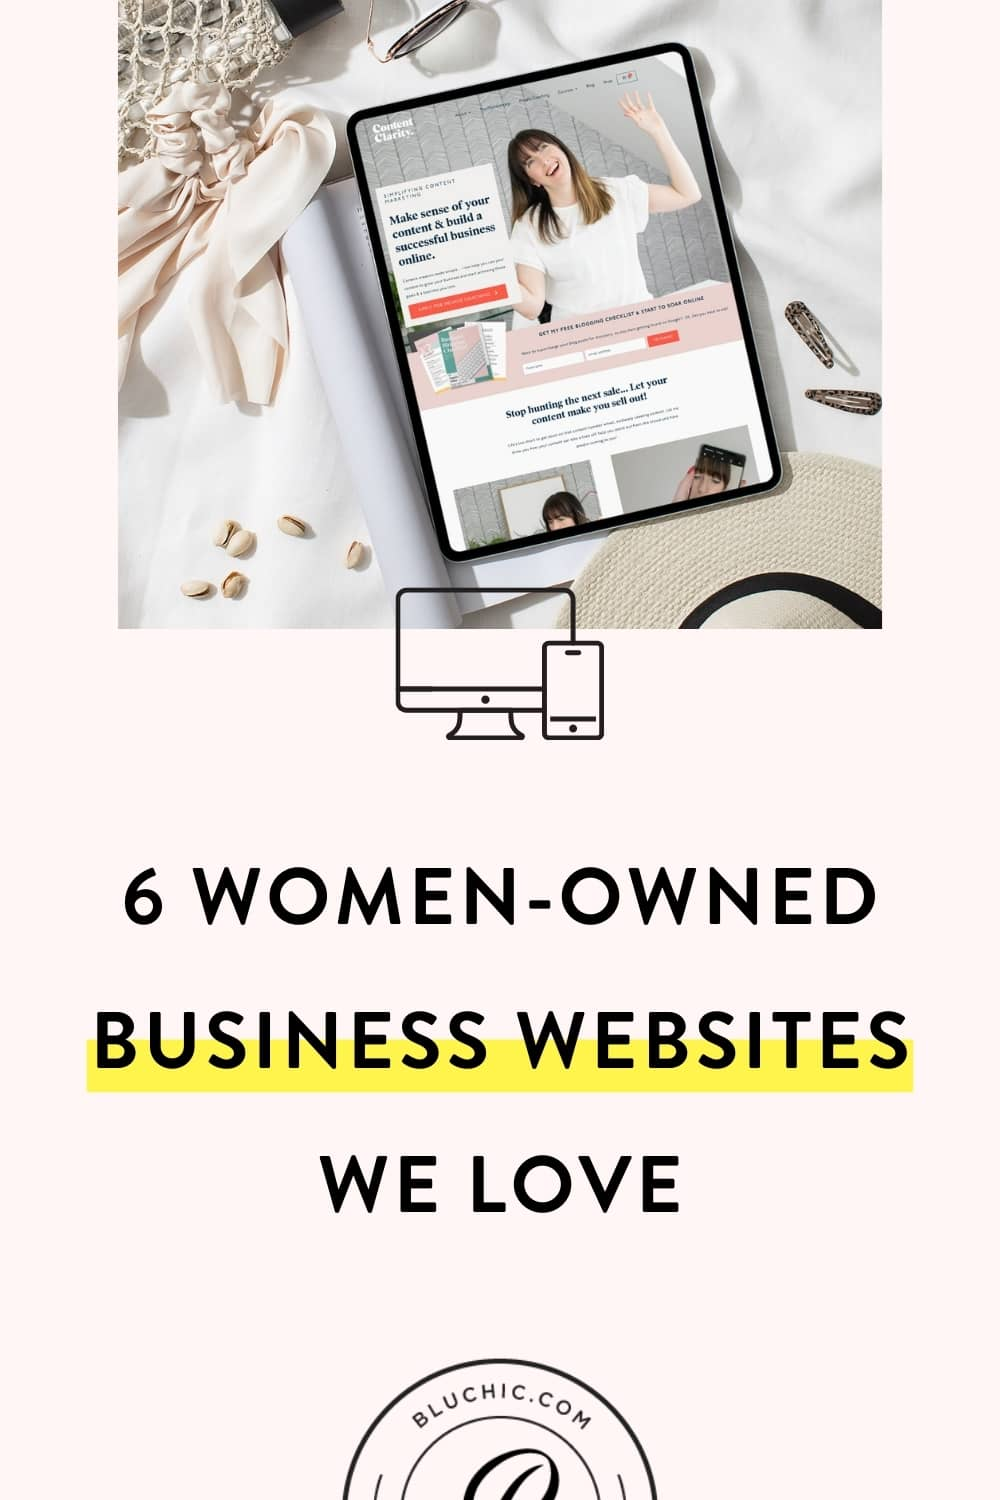 6 Women-Owned Business Websites We Love | To celebrate International Women's Day and Women's History Month, we're sharing women-owned business websites we love (and how you can launch yours, too)!